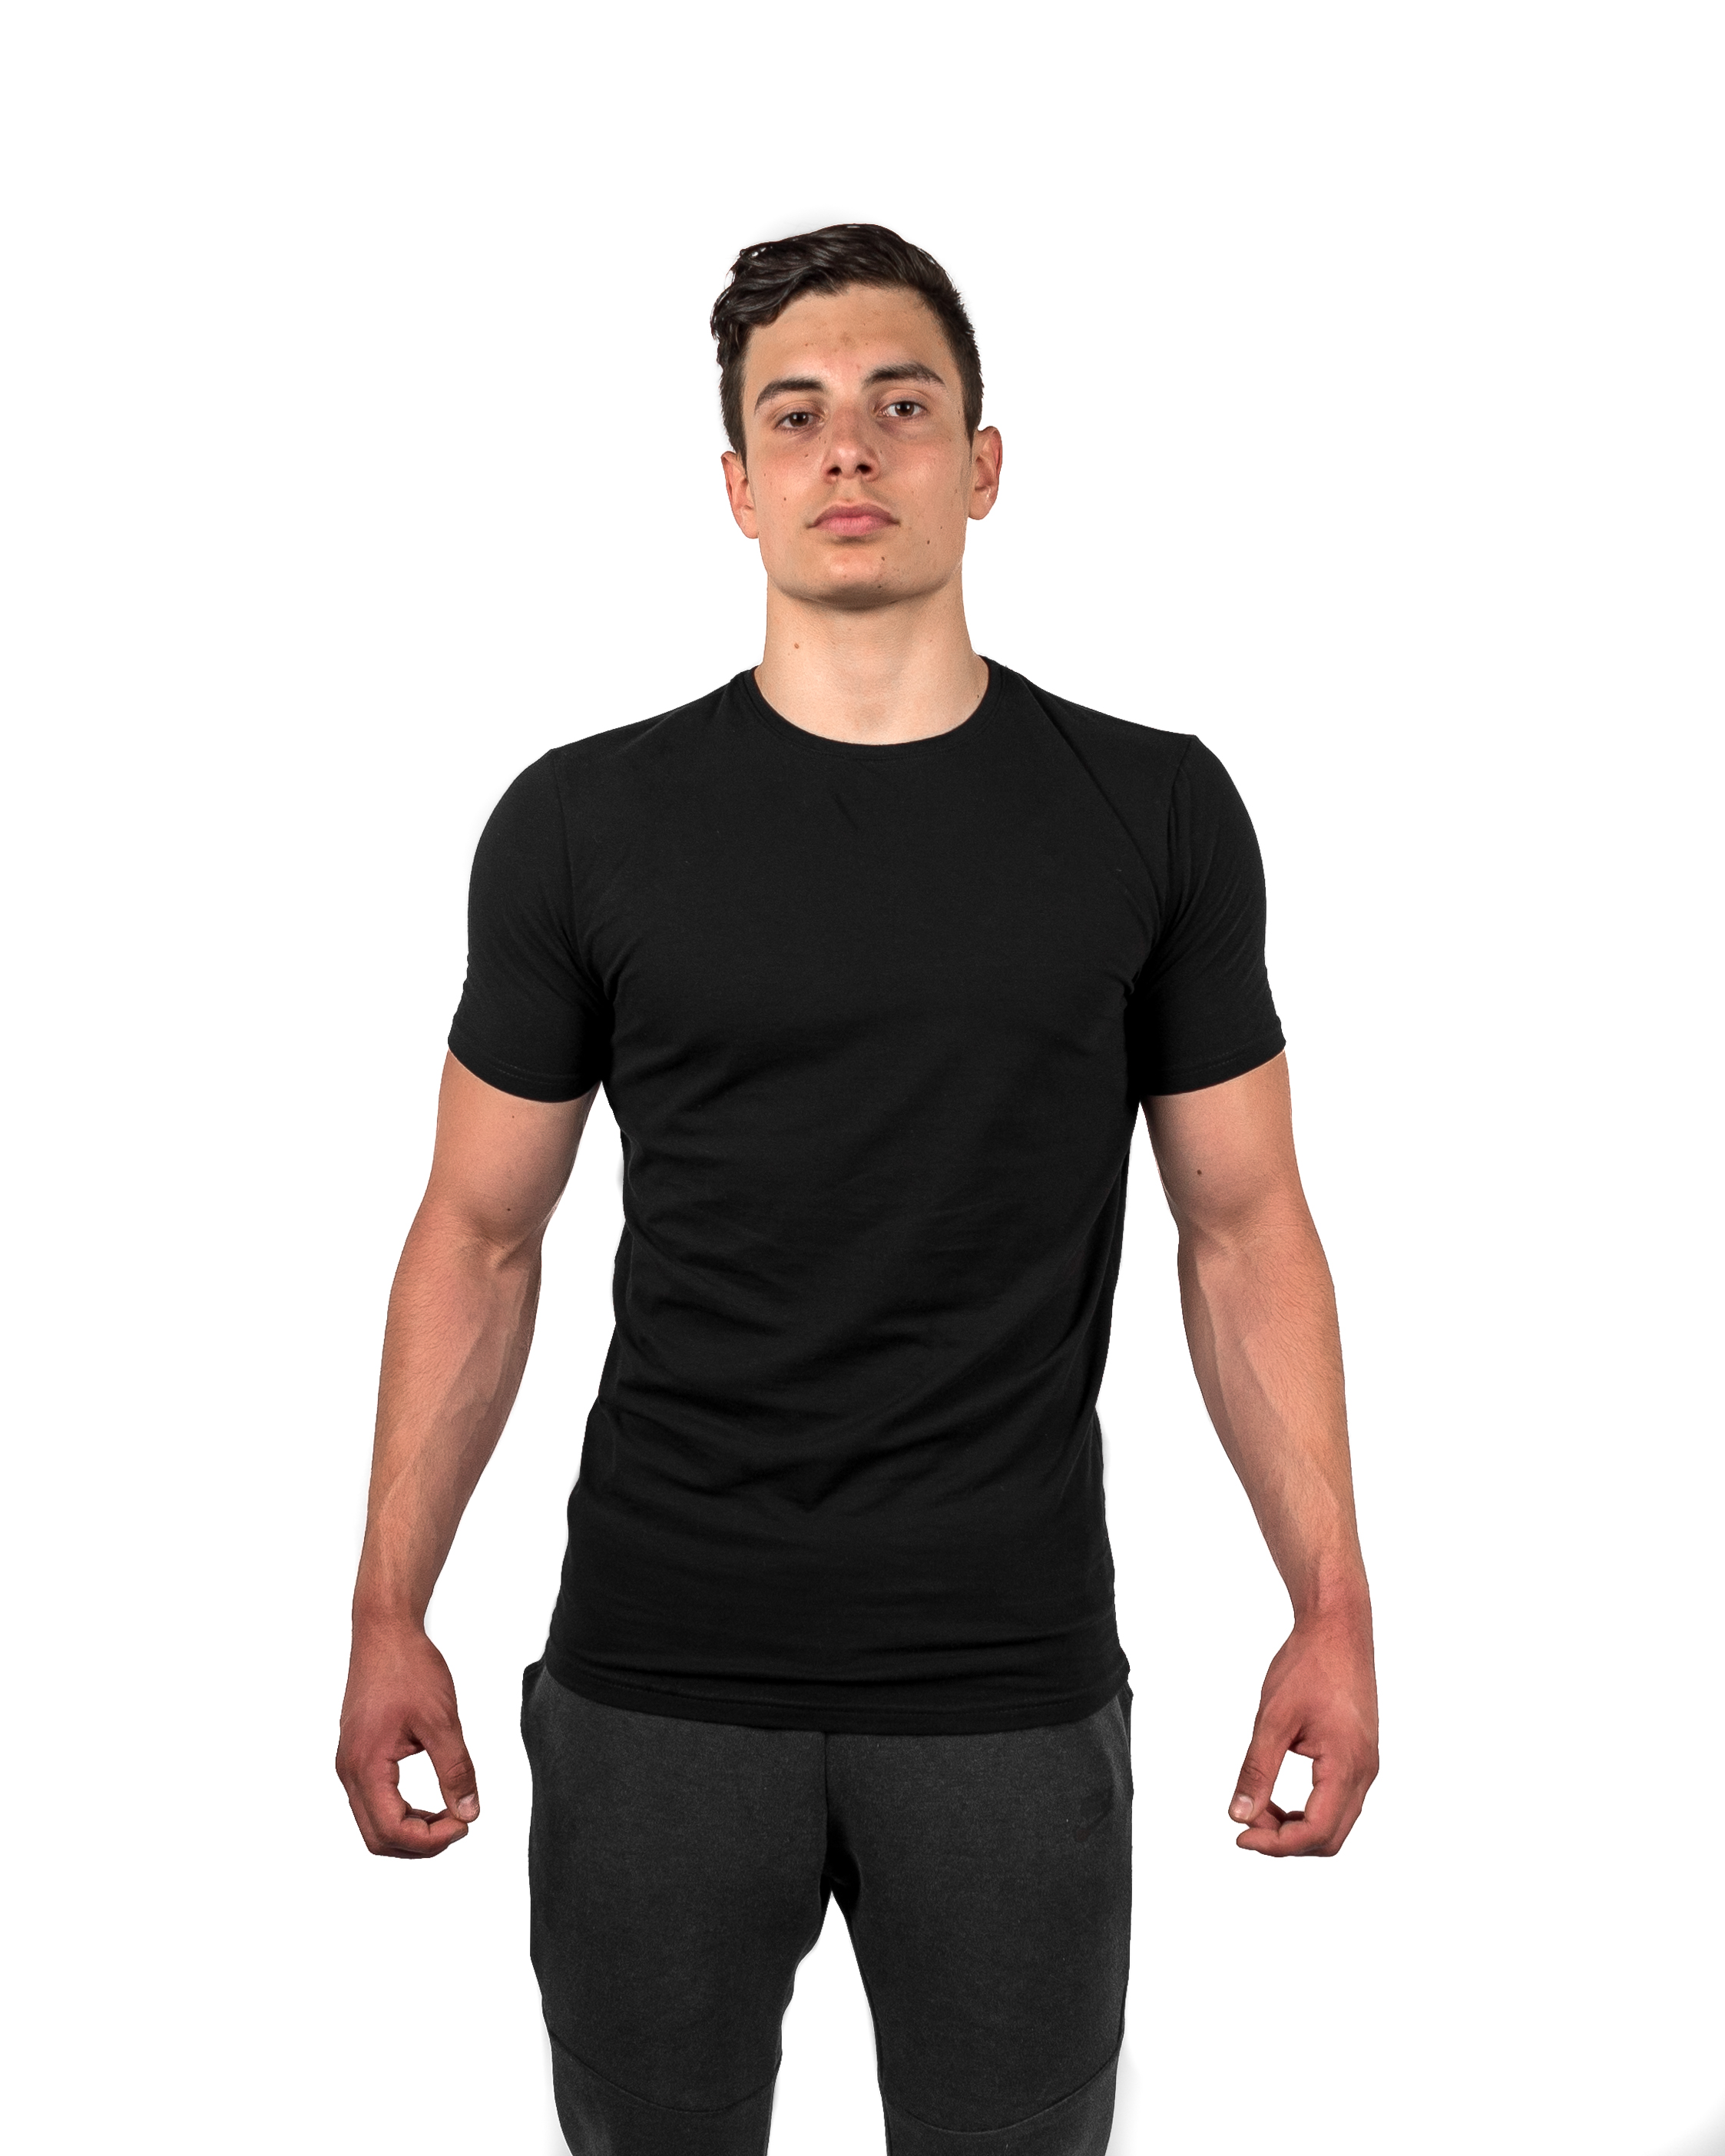 4b8b5639 The Muscle Fit Tee - Gymfuse